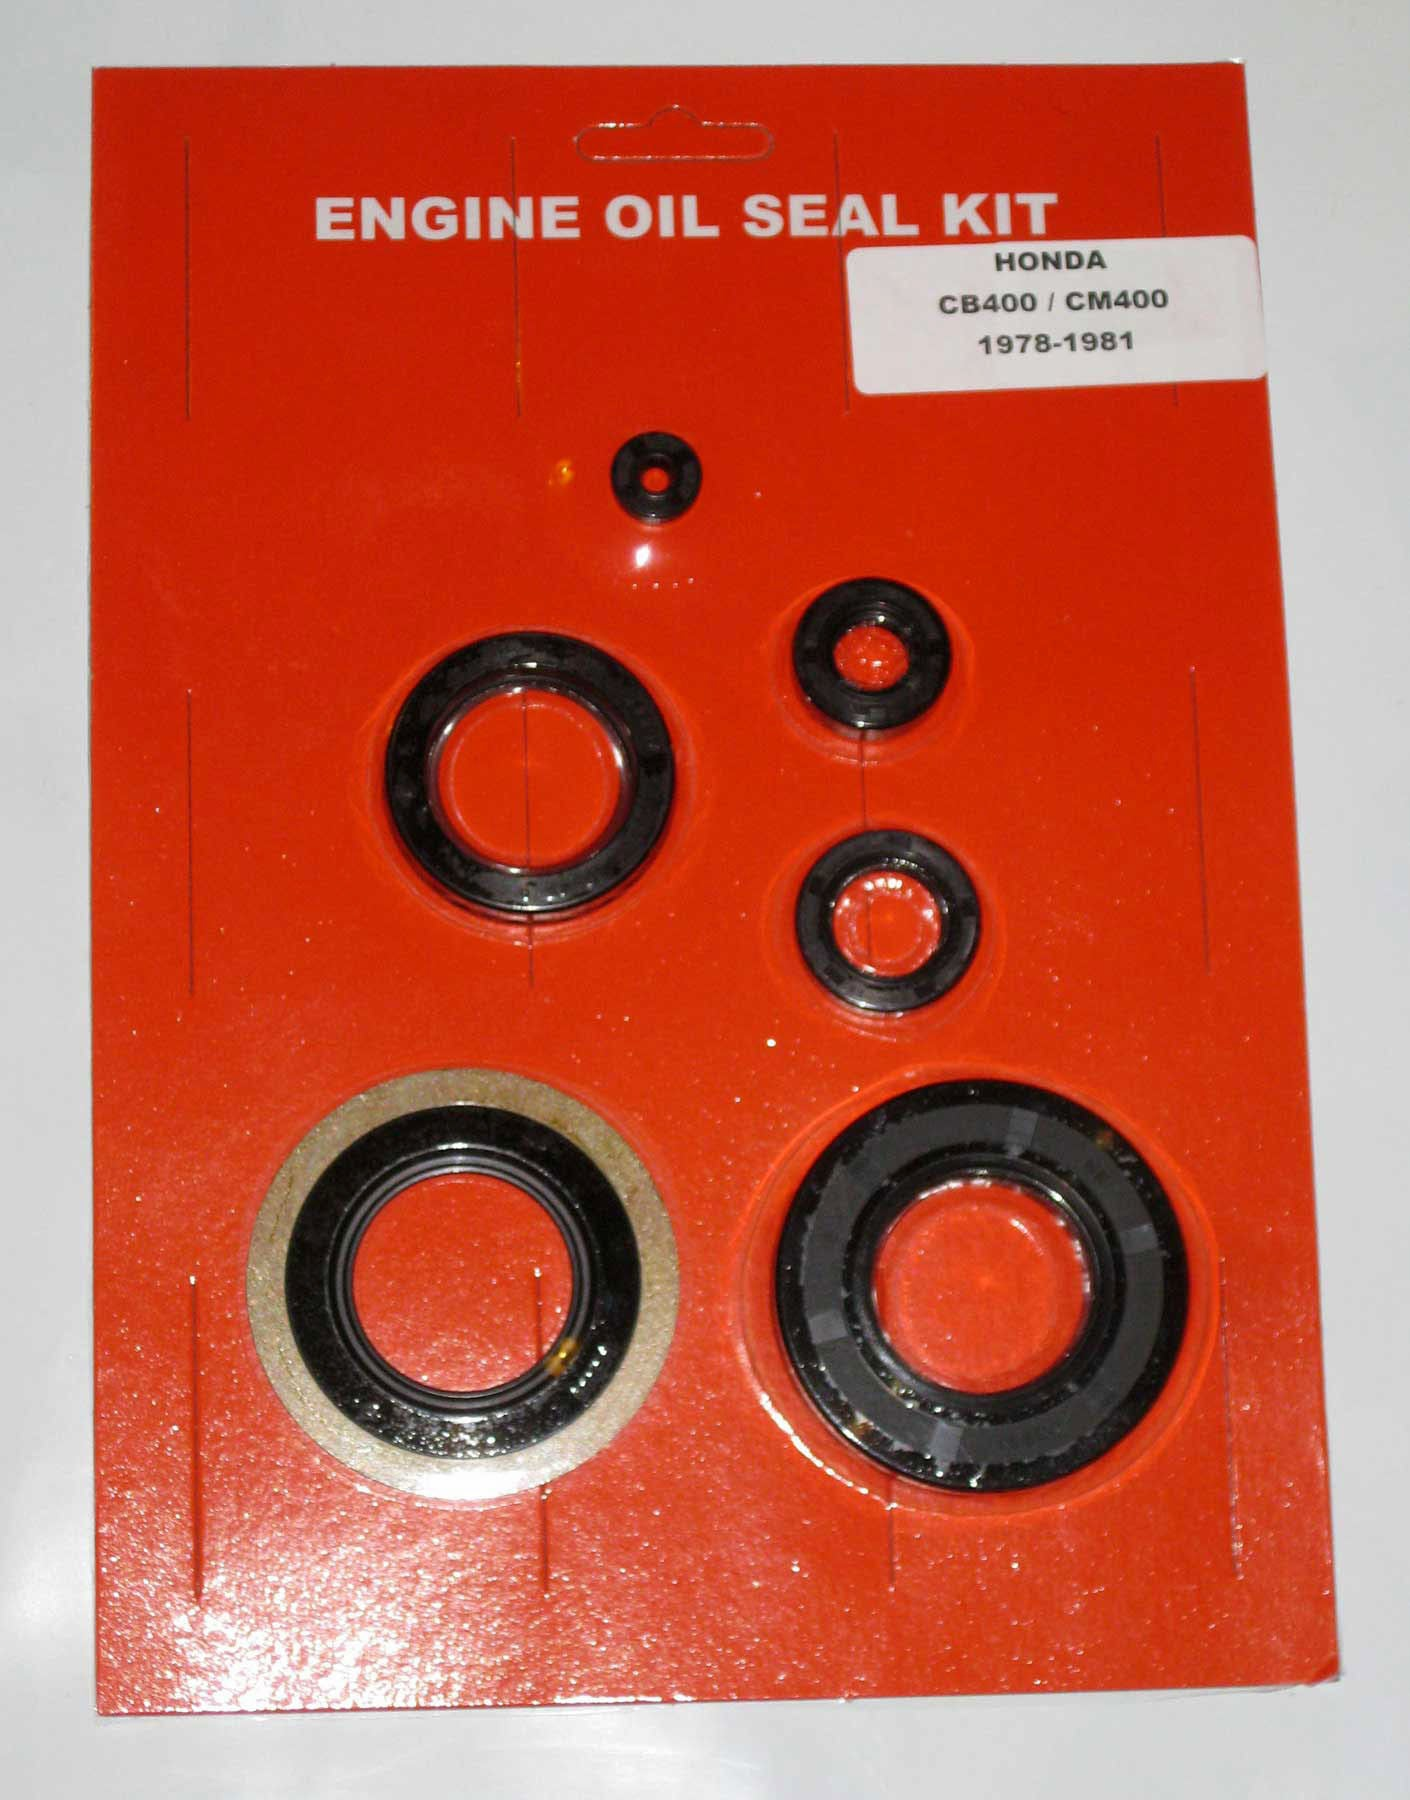 Honda CB400 CB400T CM400 CB400A Hawk Engine Oil Seal Kit 1978 1979 1980 1981